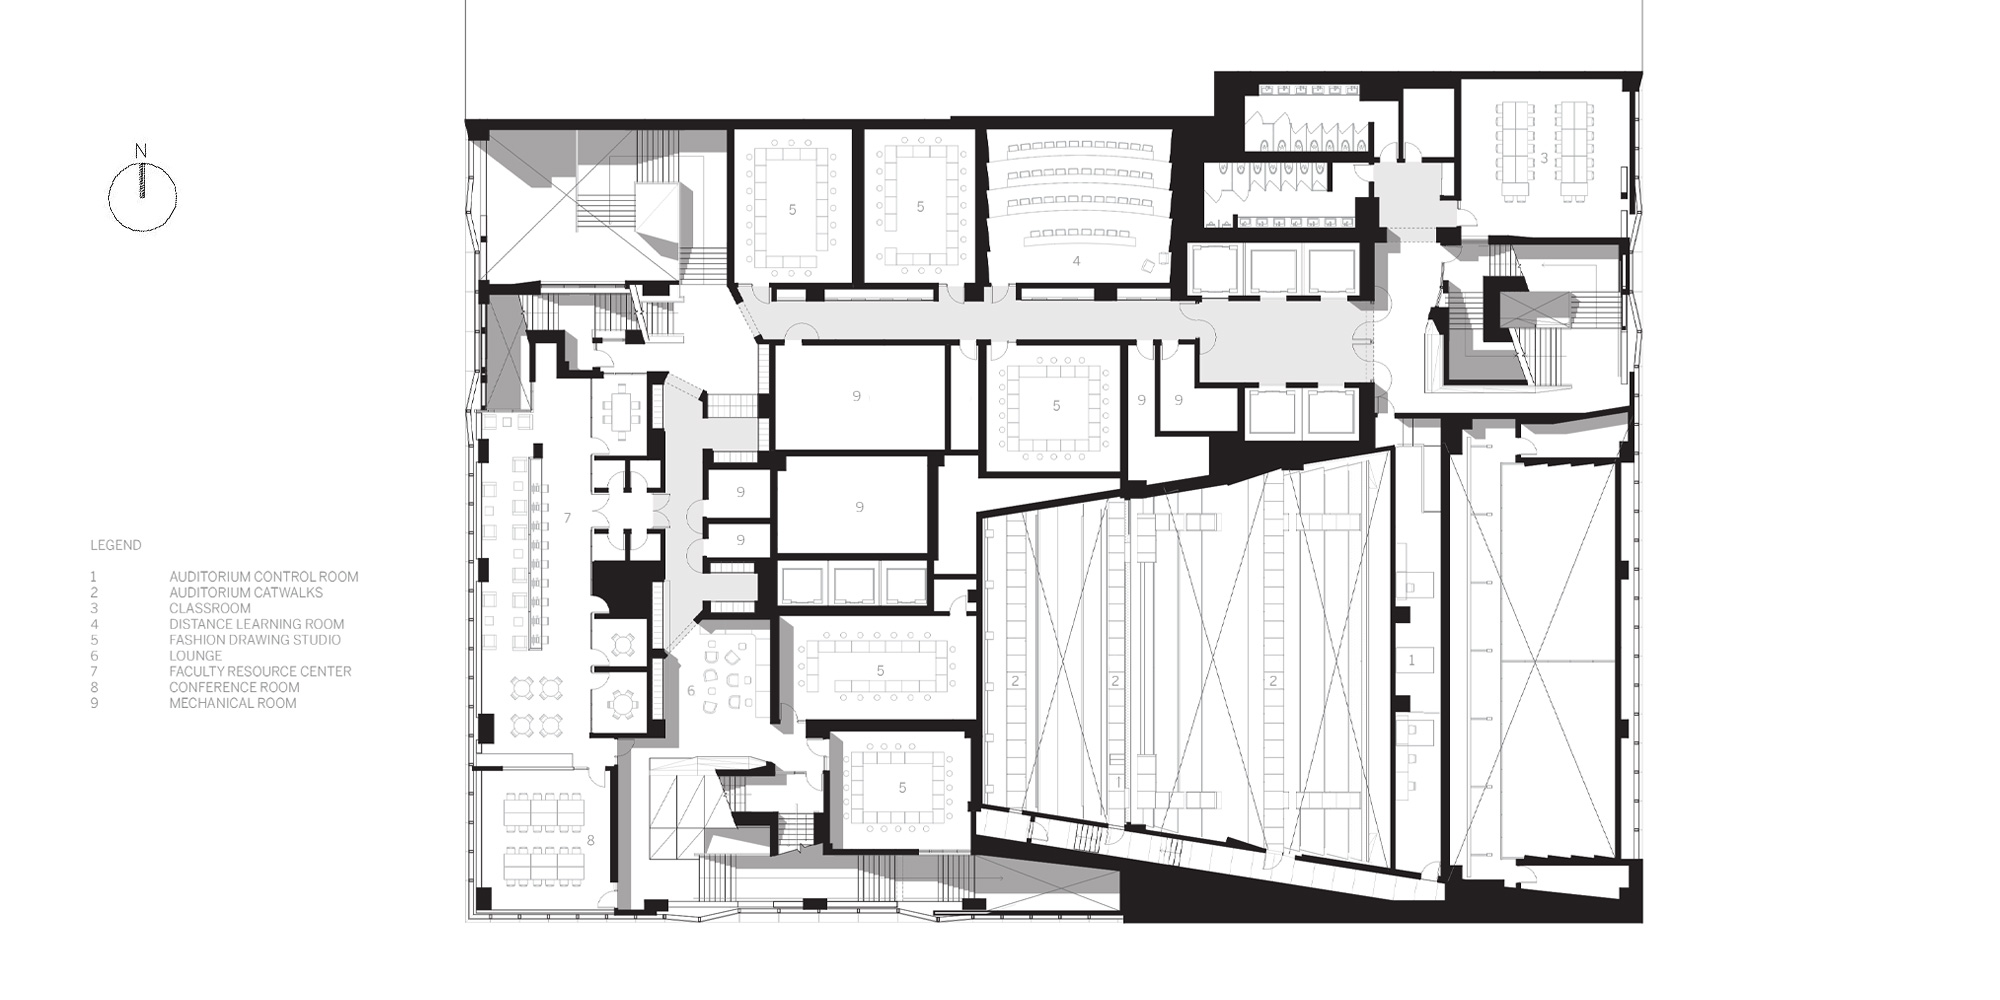 University Center, The New School by Skidmore, Owings